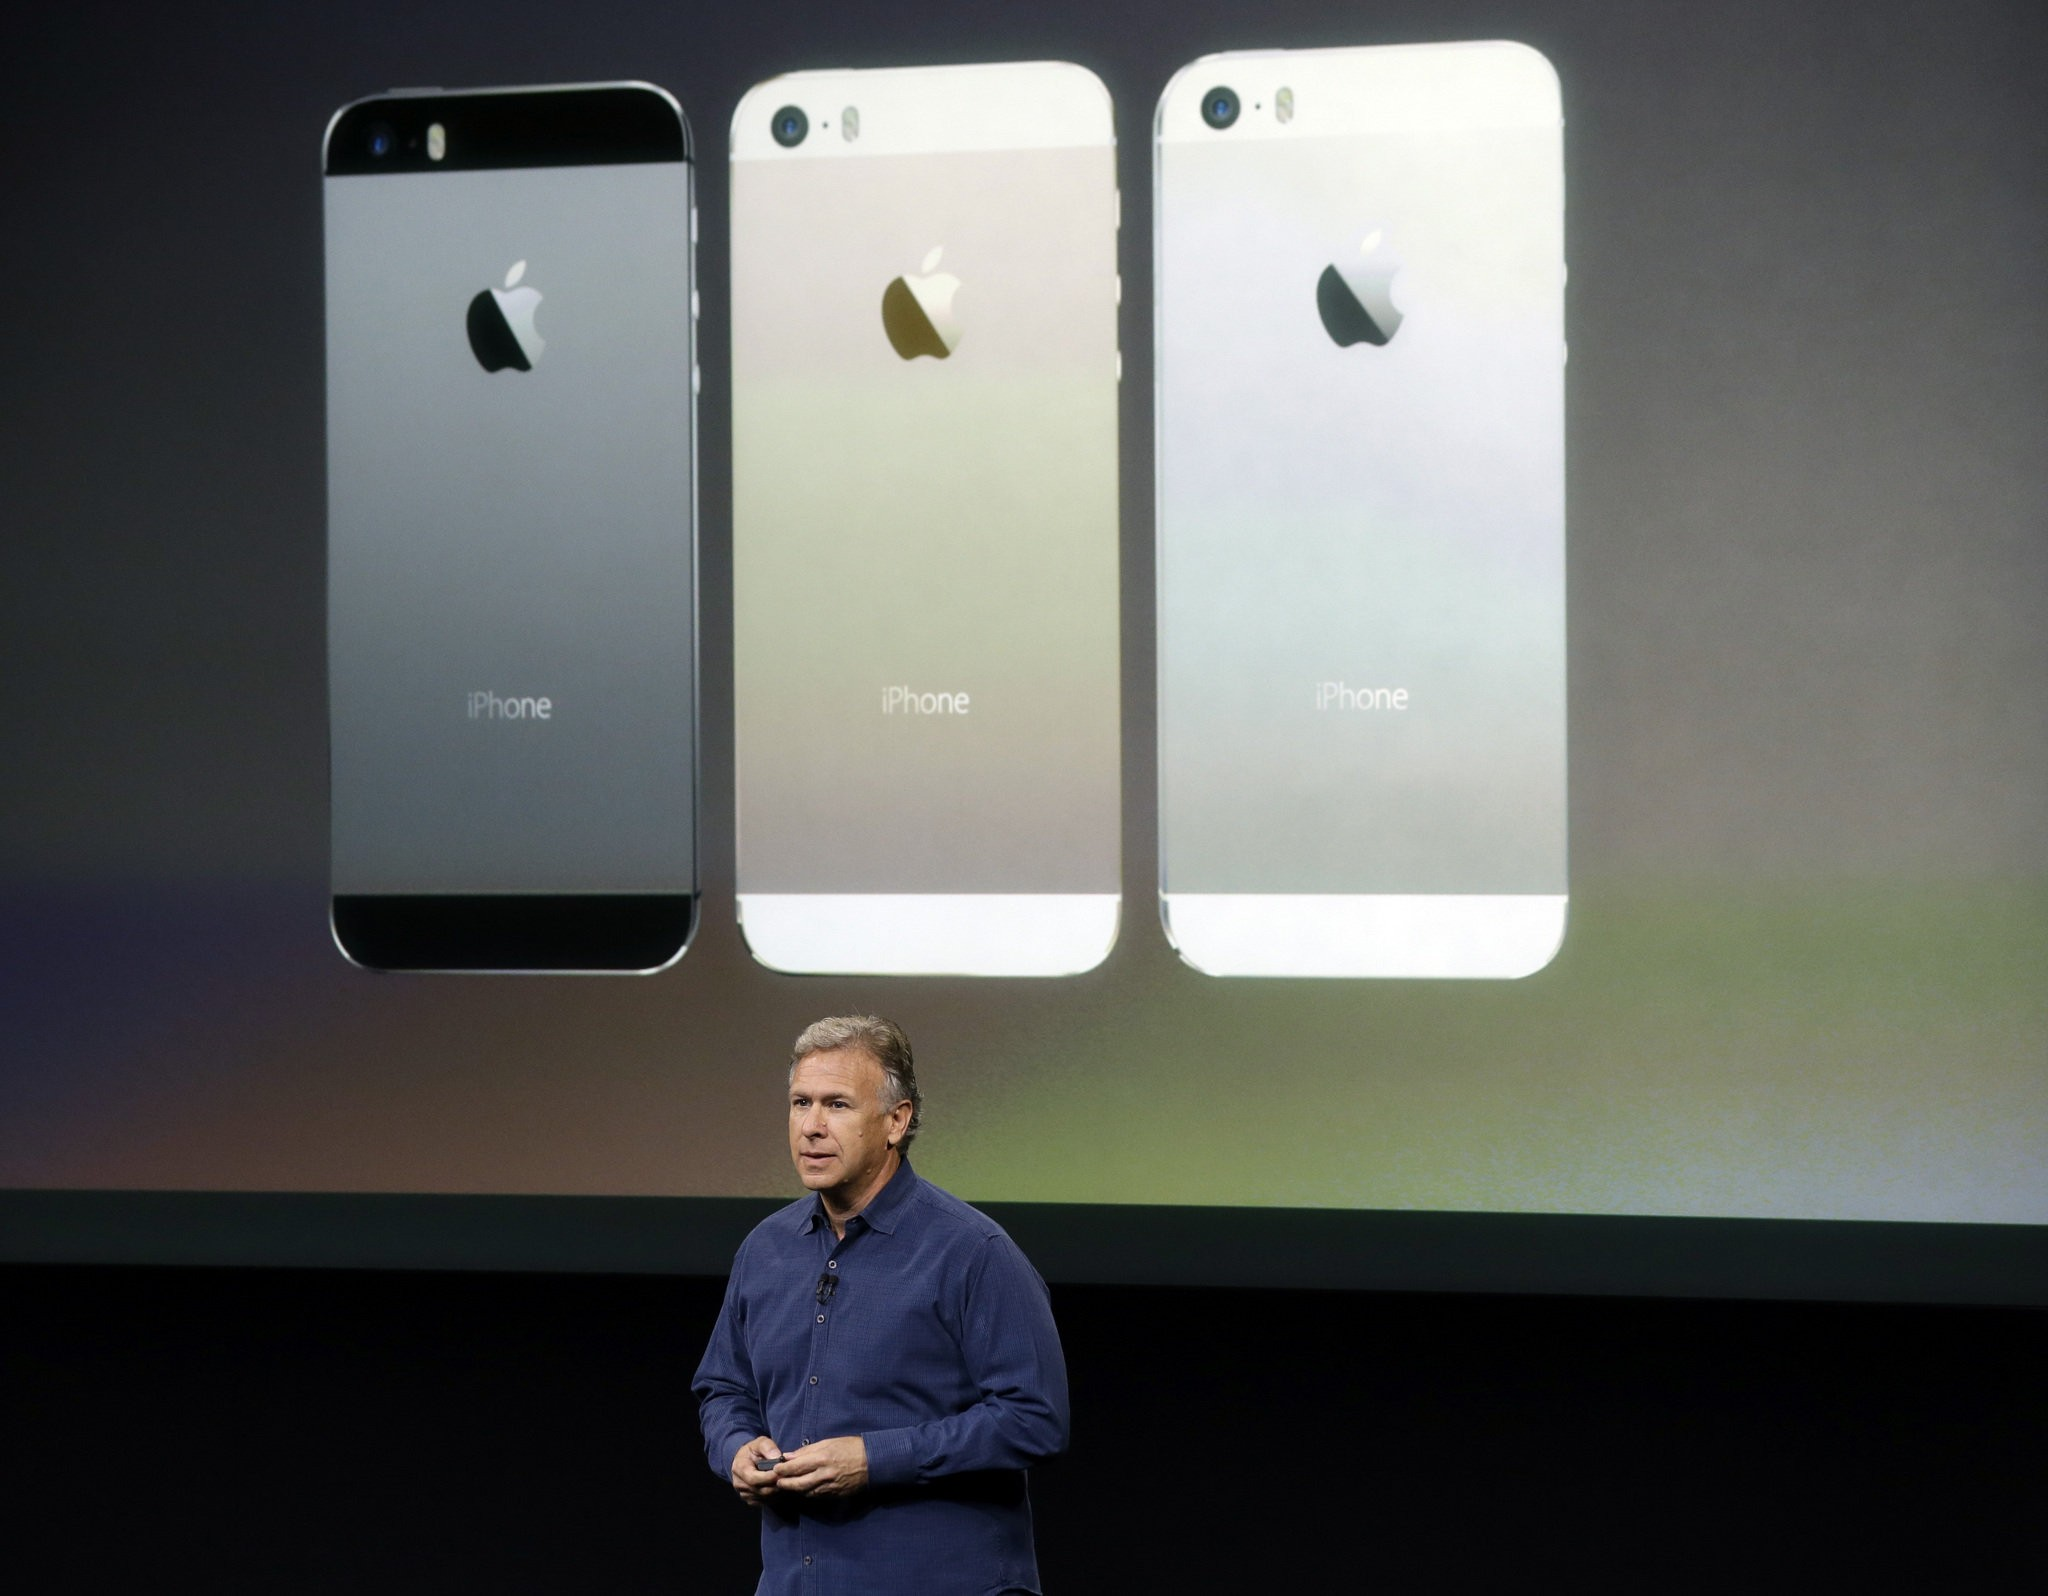 Phil Schiller, Apple's senior vice president of worldwide product marketing, speaks on stage during the introduction of the new iPhone 5s in Cupertino, Calif., Tuesday, Sept. 10, 2013.